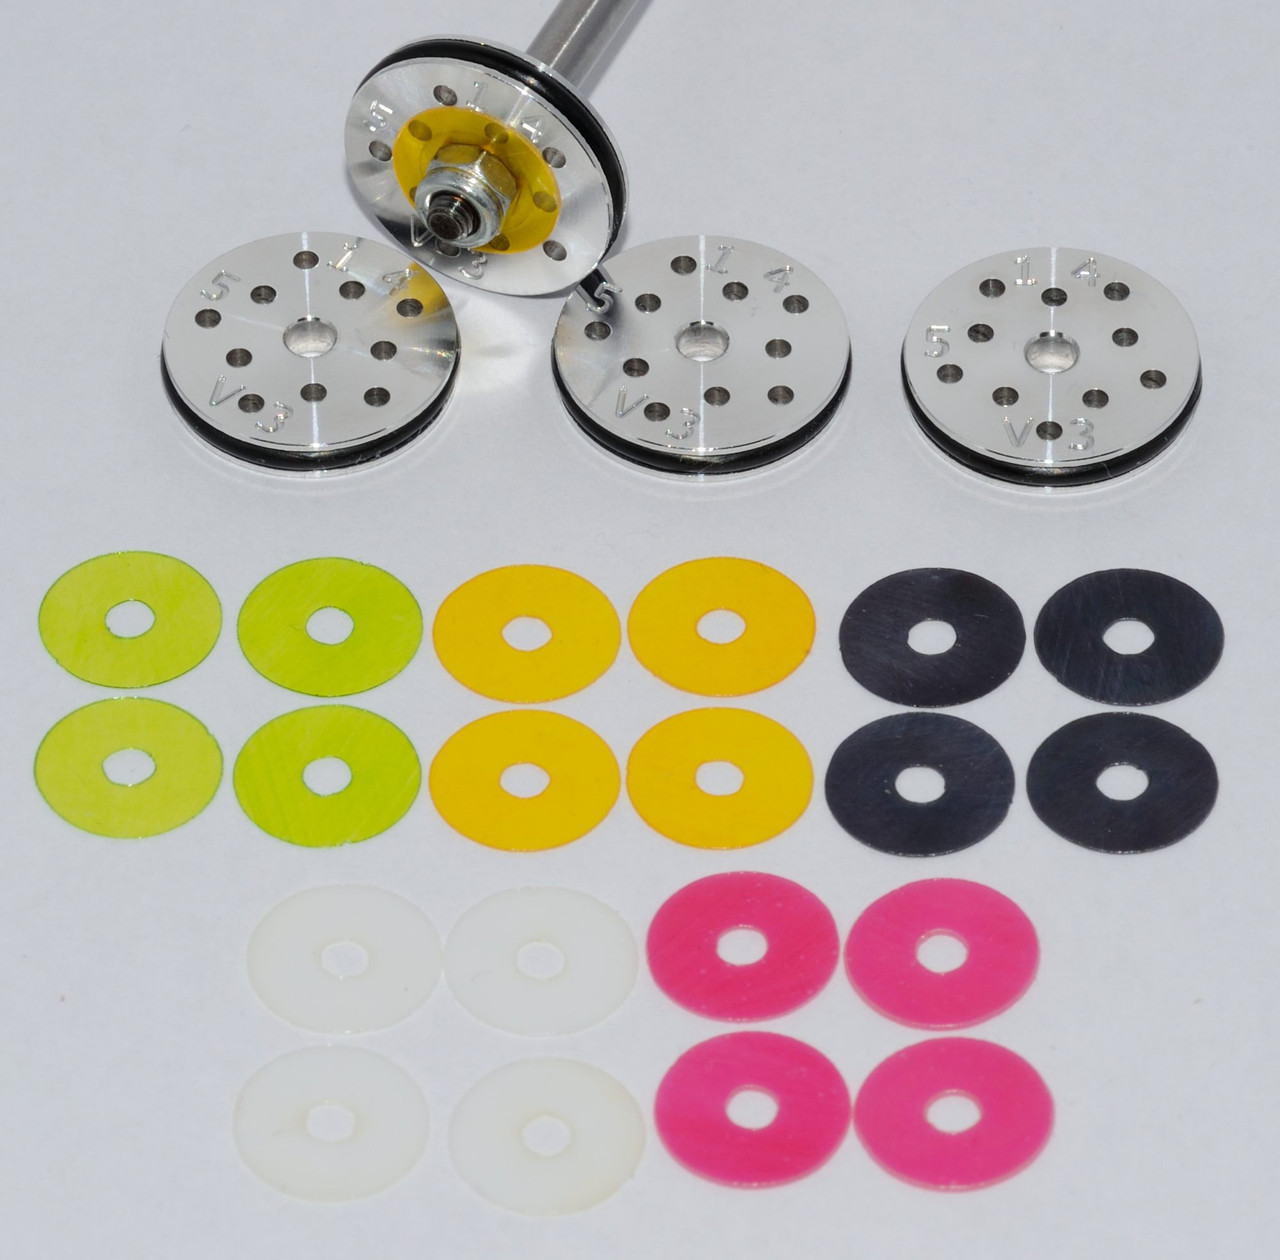 #1 RC Shock Rebound Valved Pistons 16mm, 5 hole, 1.4mm. Losi 8ight, HB, Serpent 2.0